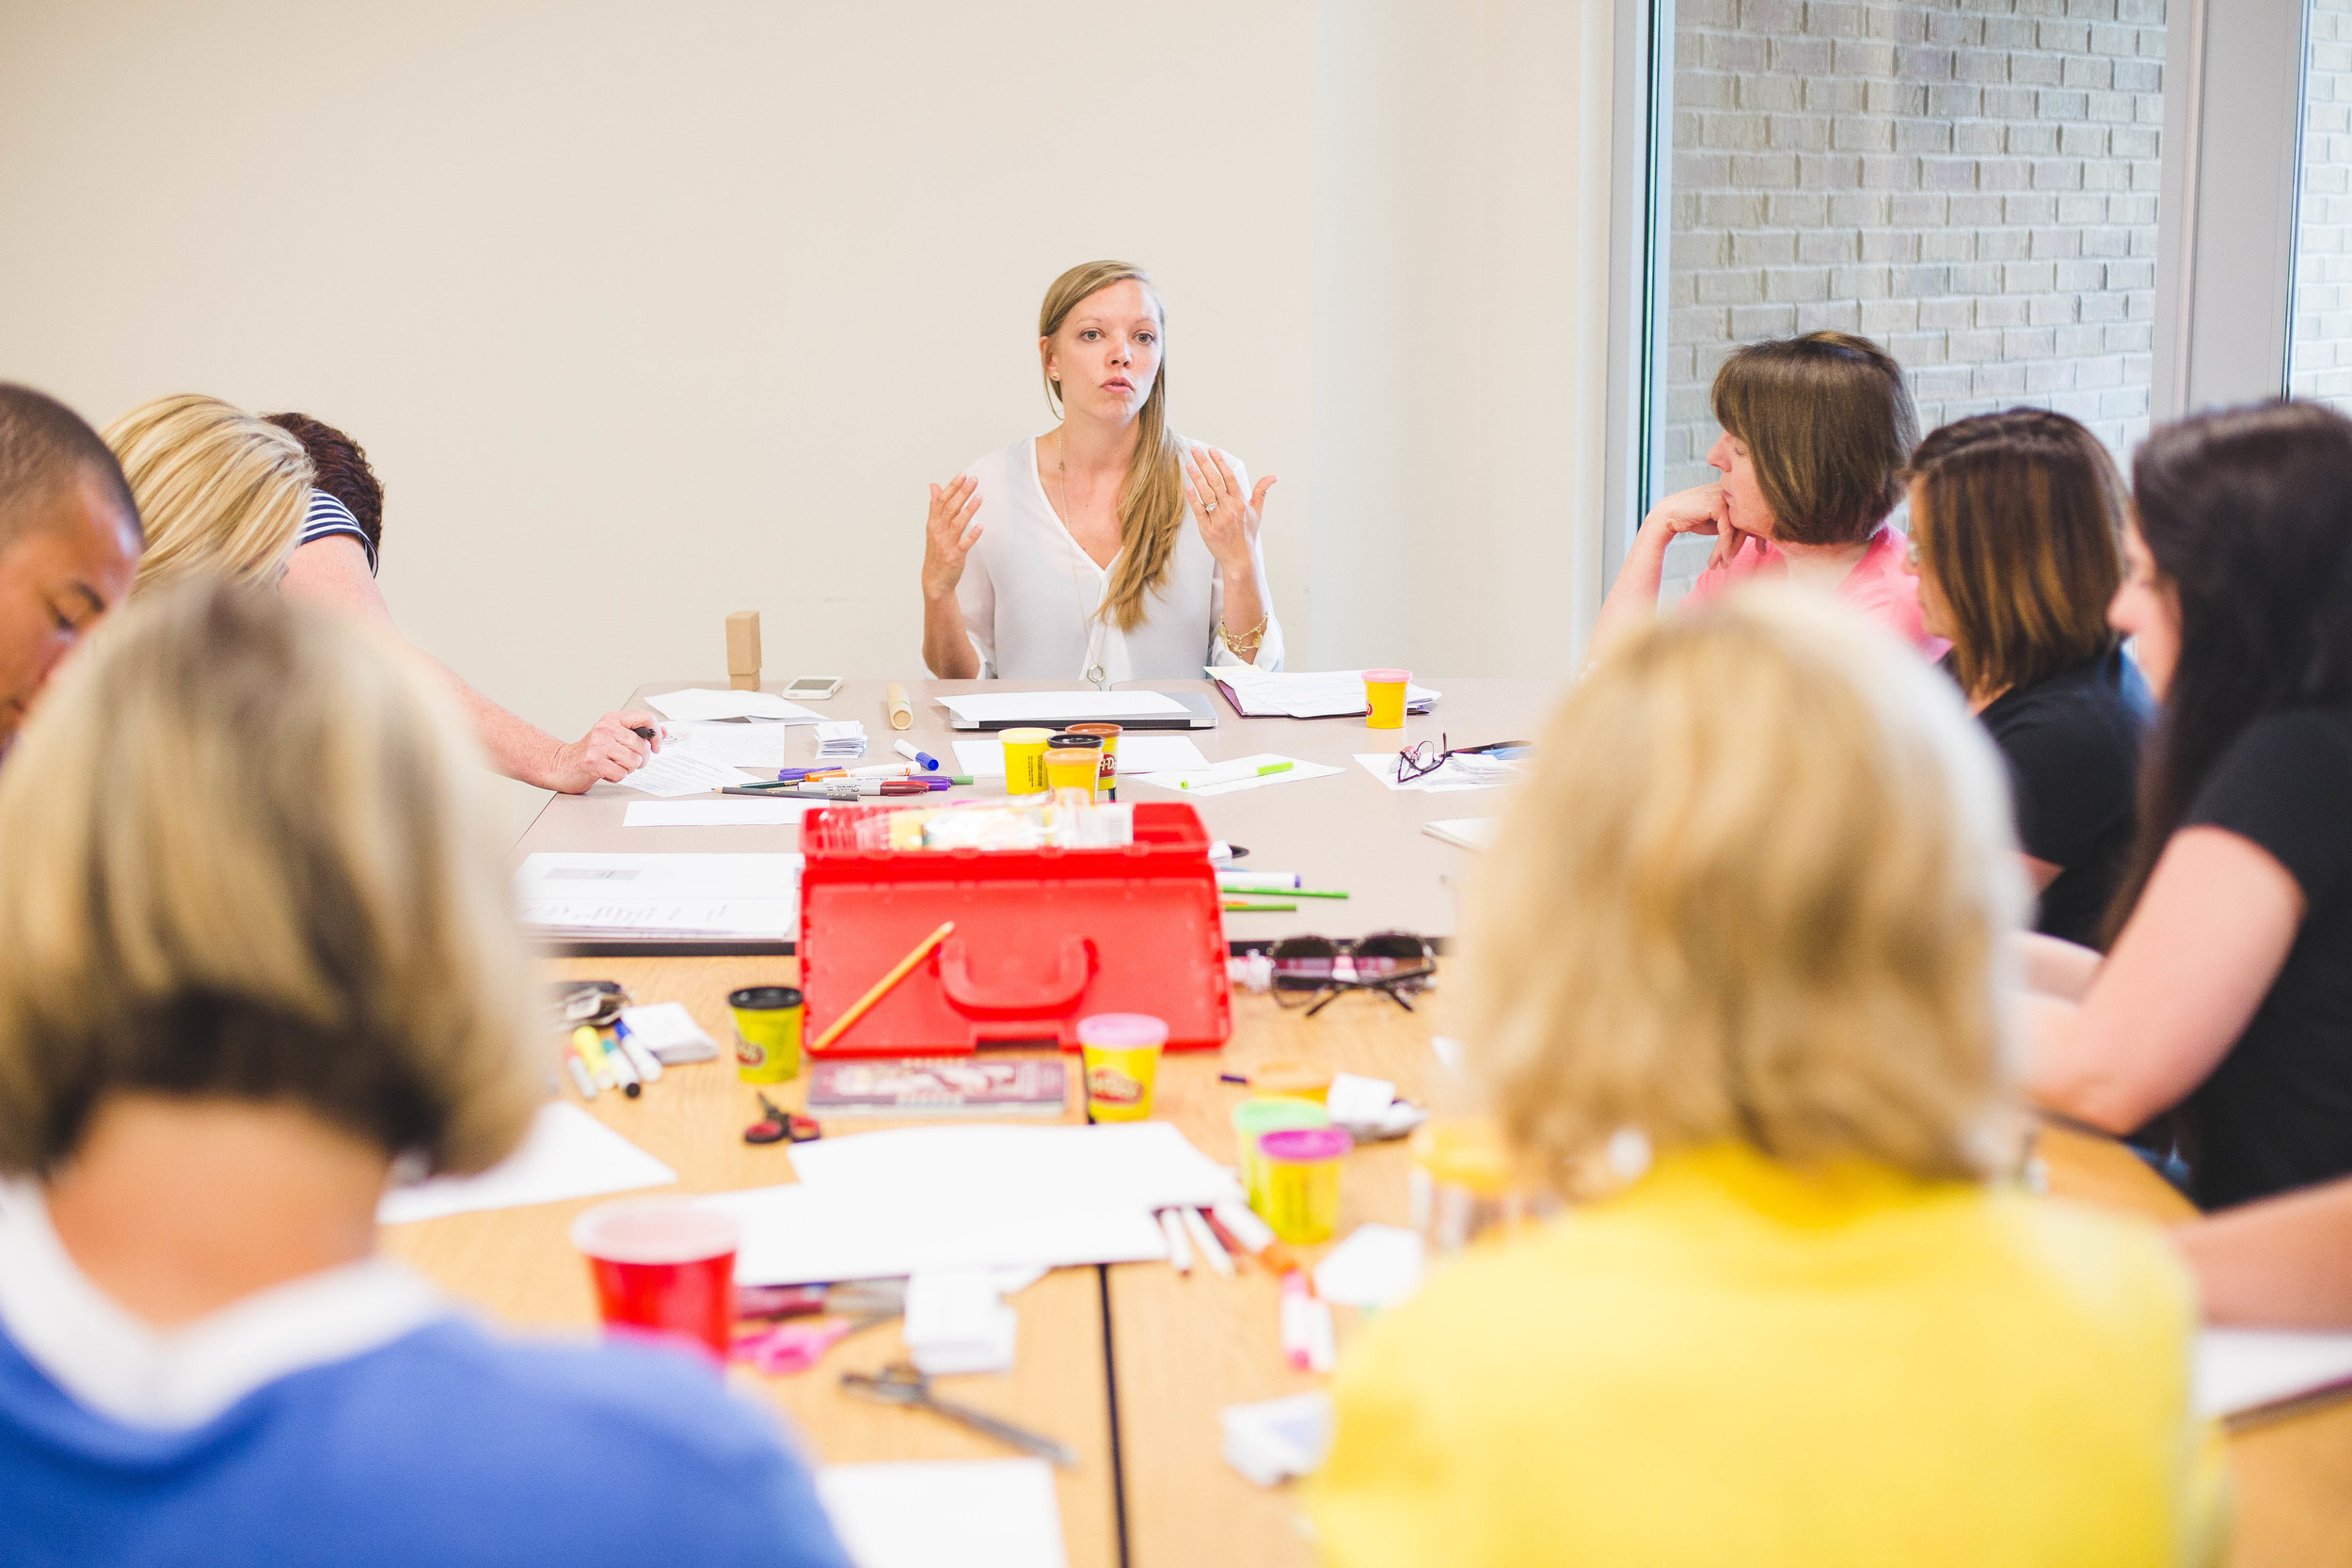 Three workshop series - can help you meet the needs of your employees and leaders. Each workshop can stand alone, or be combined with others in its series for a half or full day of professional development.